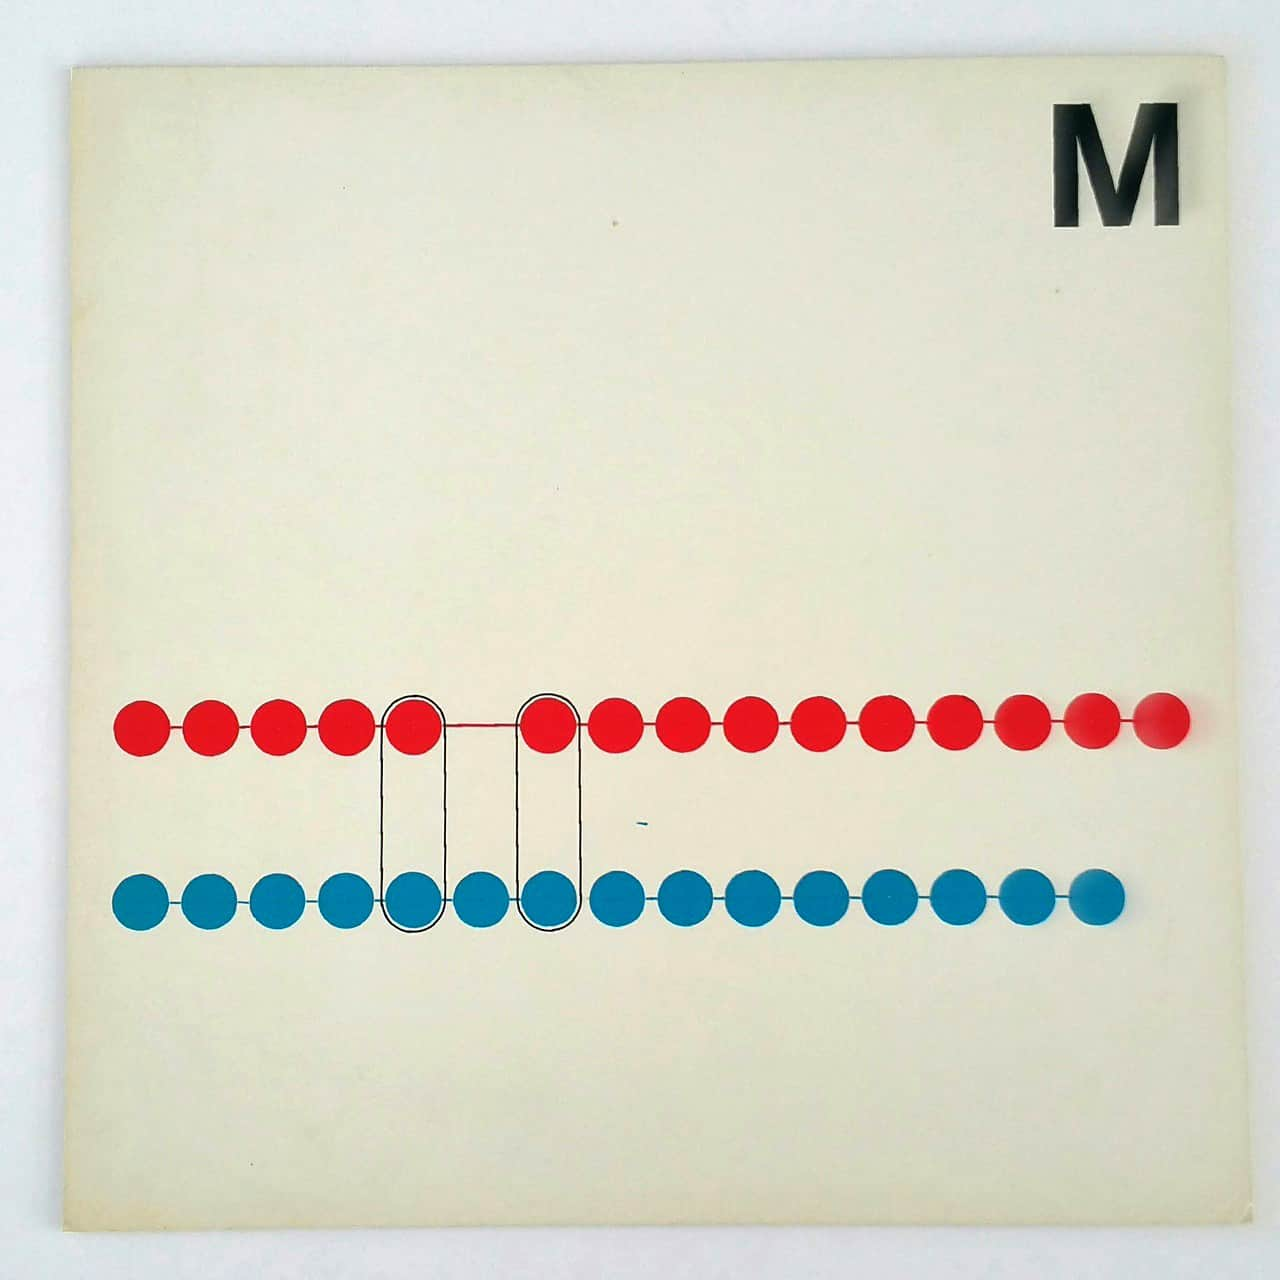 Massimo Vignelli Subway Map 1978.Unrealised Dc Metro Subway Map Designs By Massimo Vignelli